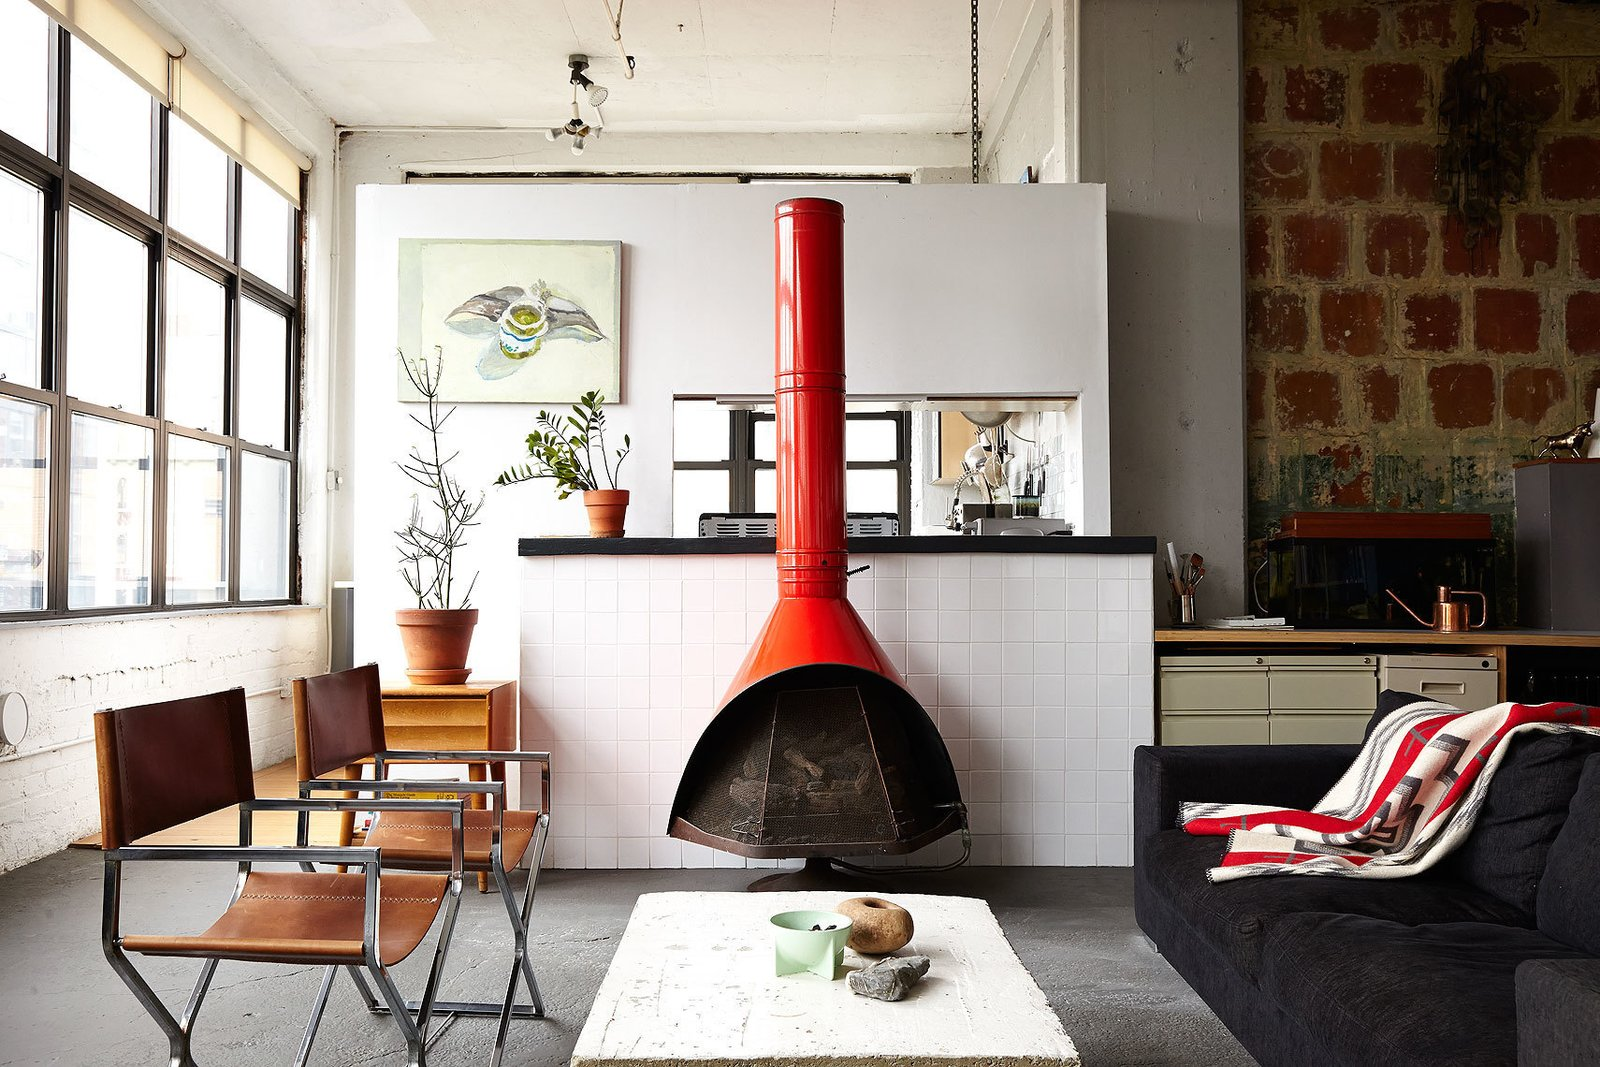 """""""I'm not trying to hide anything. I wanted to stay true to the industrial look,"""" explains Owen Wright, the owner of this Brooklyn loft. Owen works with his building's landlord and consequently has accrued countless pieces of furniture from both former tenants and Craigslist—including this 1960's fireplace and pair of steel frame chairs Owen had reupholstered. A BoConcept sofa and coffee table Owen constructed himself complete the living room.  97+ Modern Fireplace Ideas from One Person's Trash: This Brooklynite Built an Impressive Furniture Collection from Abandoned Items"""